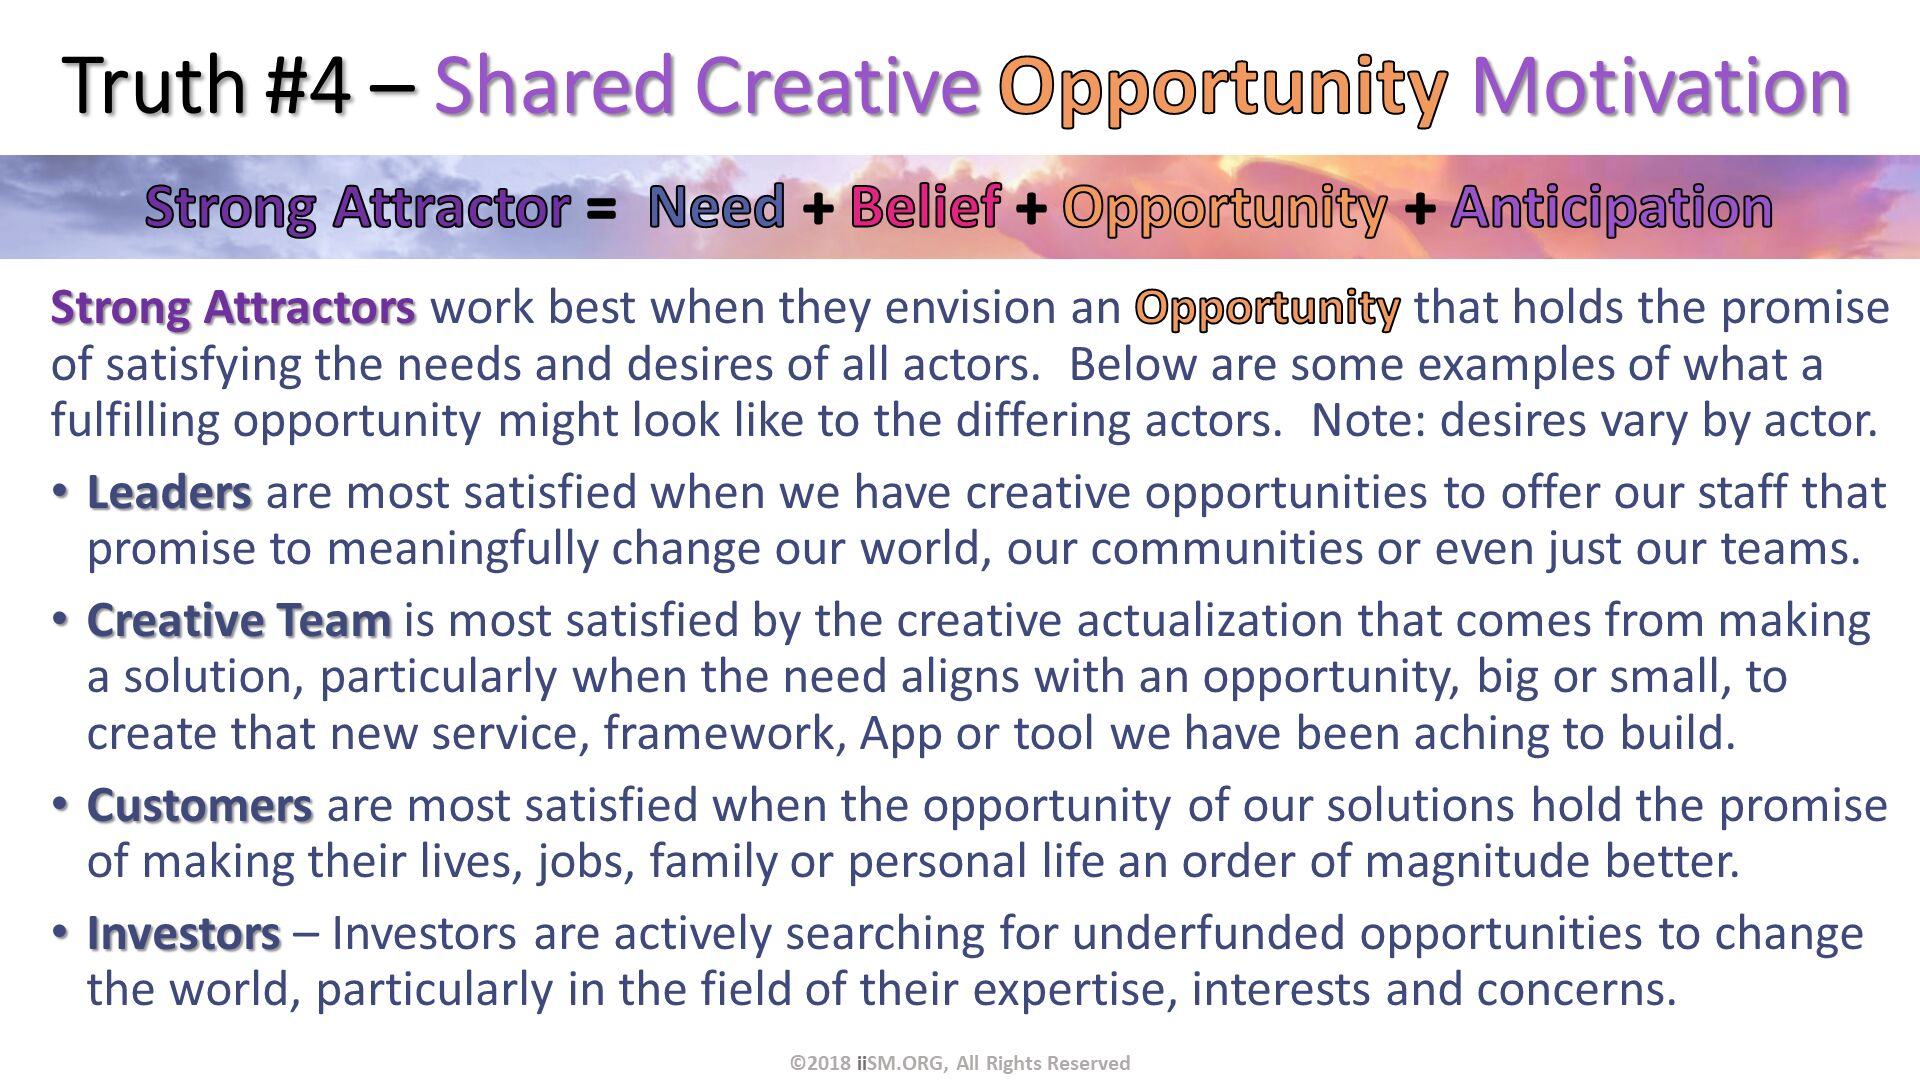 Truth #4 – Shared Creative Opportunity Motivation. Strong Attractors work best when they envision an Opportunity that holds the promise of satisfying the needs and desires of all actors.  Below are some examples of what a fulfilling opportunity might look like to the differing actors.  Note: desires vary by actor. Leaders are most satisfied when we have creative opportunities to offer our staff that promise to meaningfully change our world, our communities or even just our teams. Creative Team is most satisfied by the creative actualization that comes from making a solution, particularly when the need aligns with an opportunity, big or small, to create that new service, framework, App or tool we have been aching to build.  Customers are most satisfied when the opportunity of our solutions hold the promise of making their lives, jobs, family or personal life an order of magnitude better. Investors – Investors are actively searching for underfunded opportunities to change the world, particularly in the field of their expertise, interests and concerns. ©2018 iiSM.ORG, All Rights Reserved.